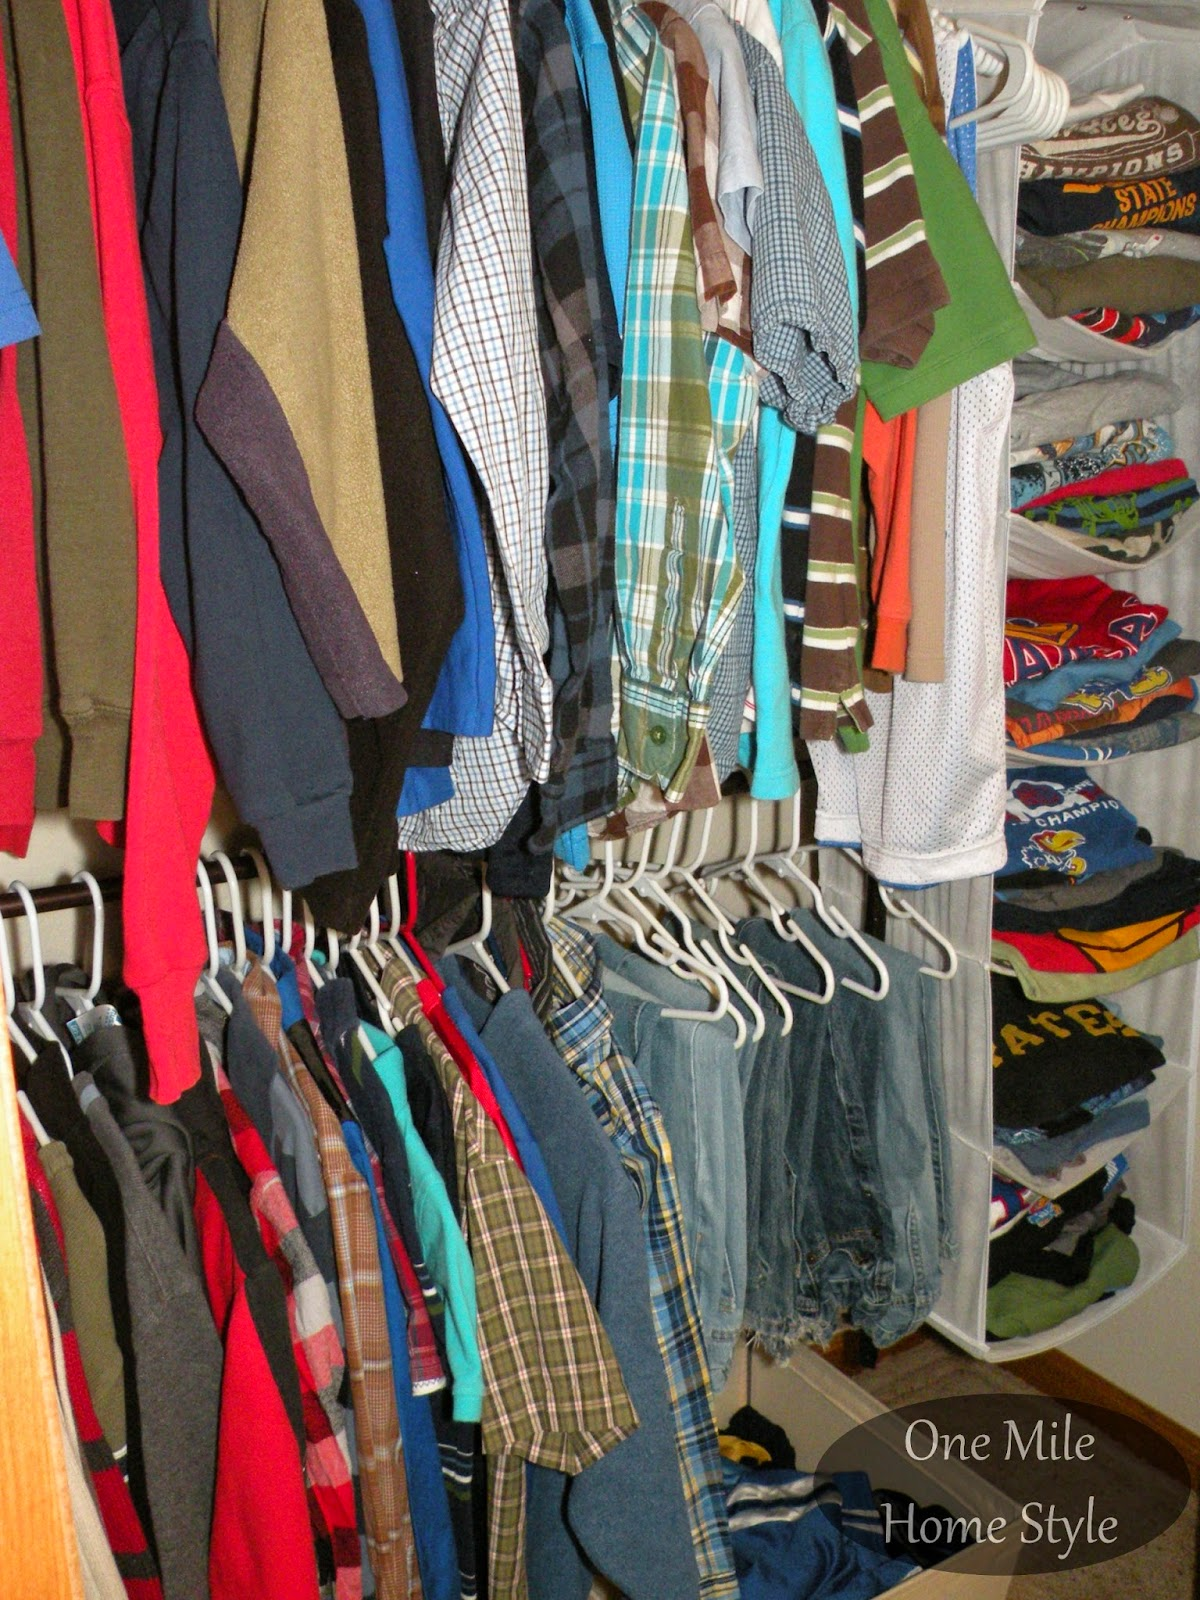 Hanging sweater organizer to organize t-shirts